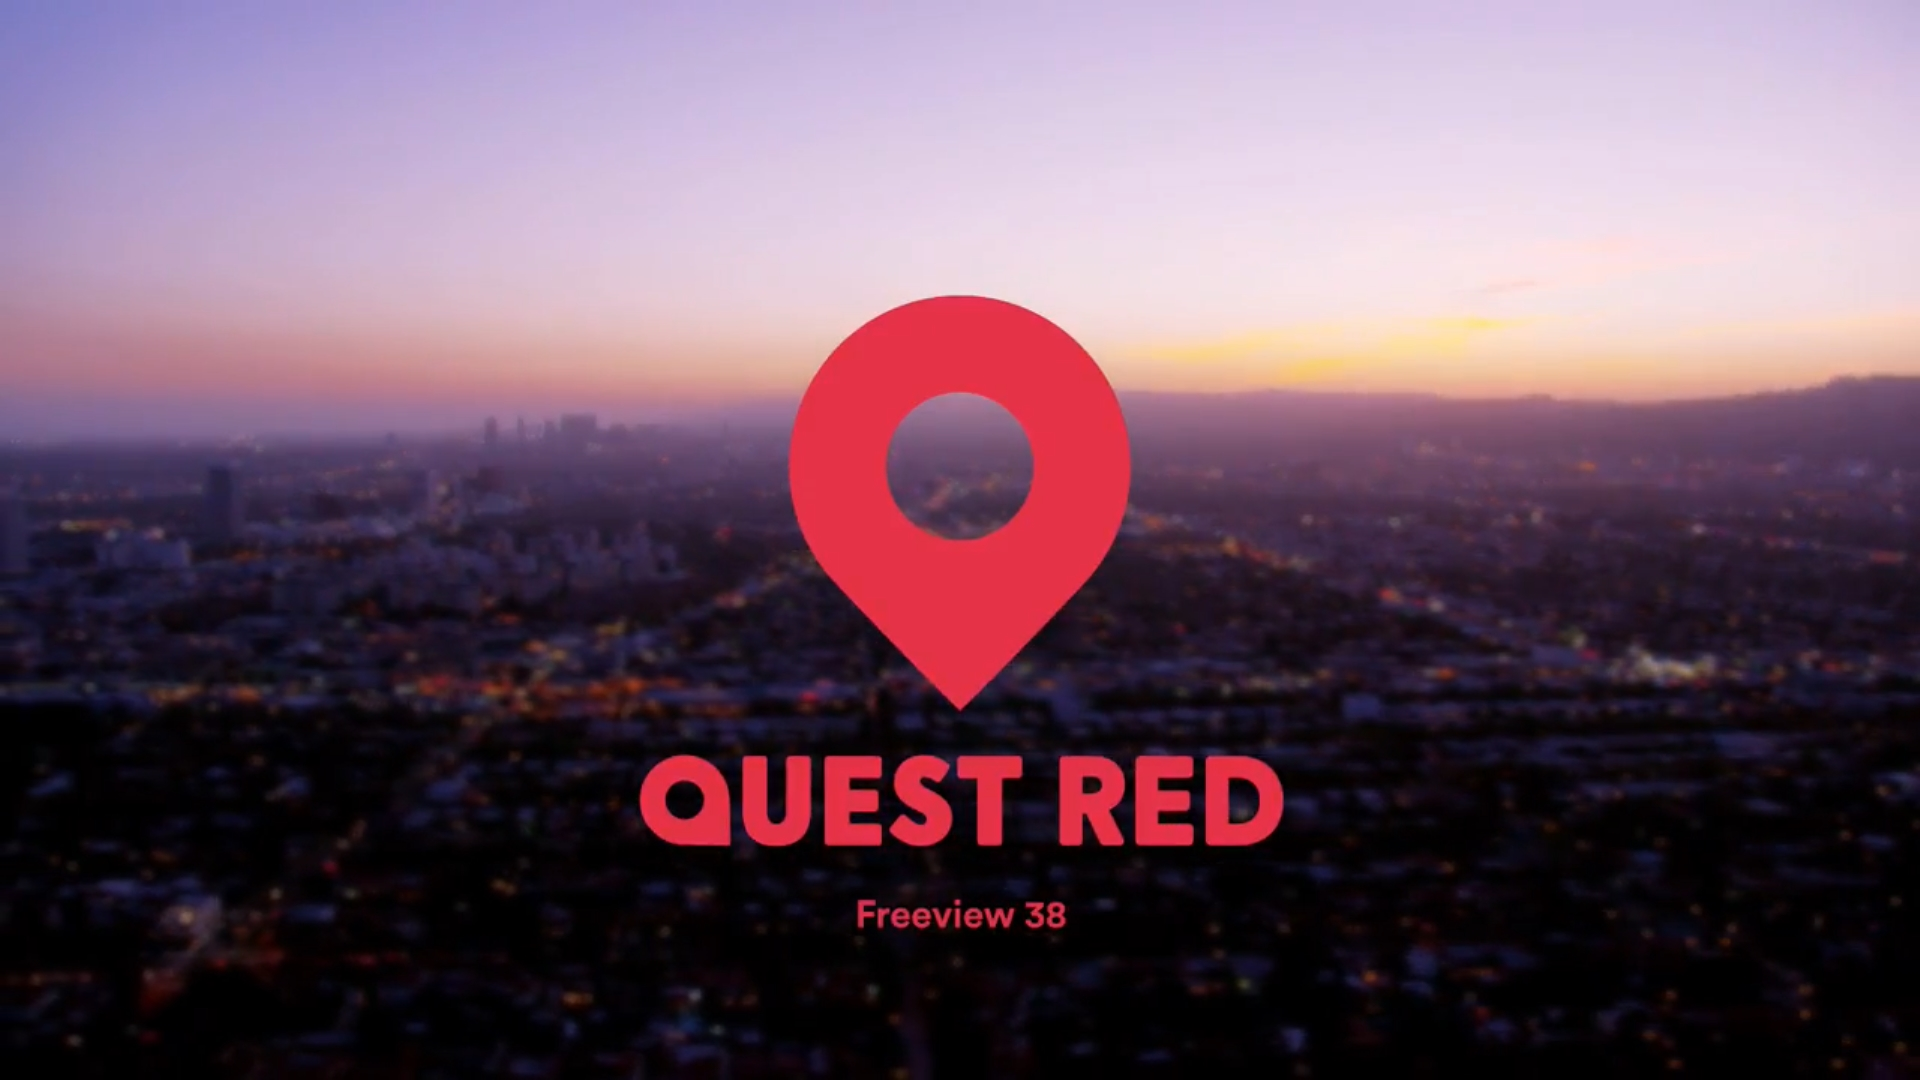 Quest+1 & Quest Red+1 launch on Freesat